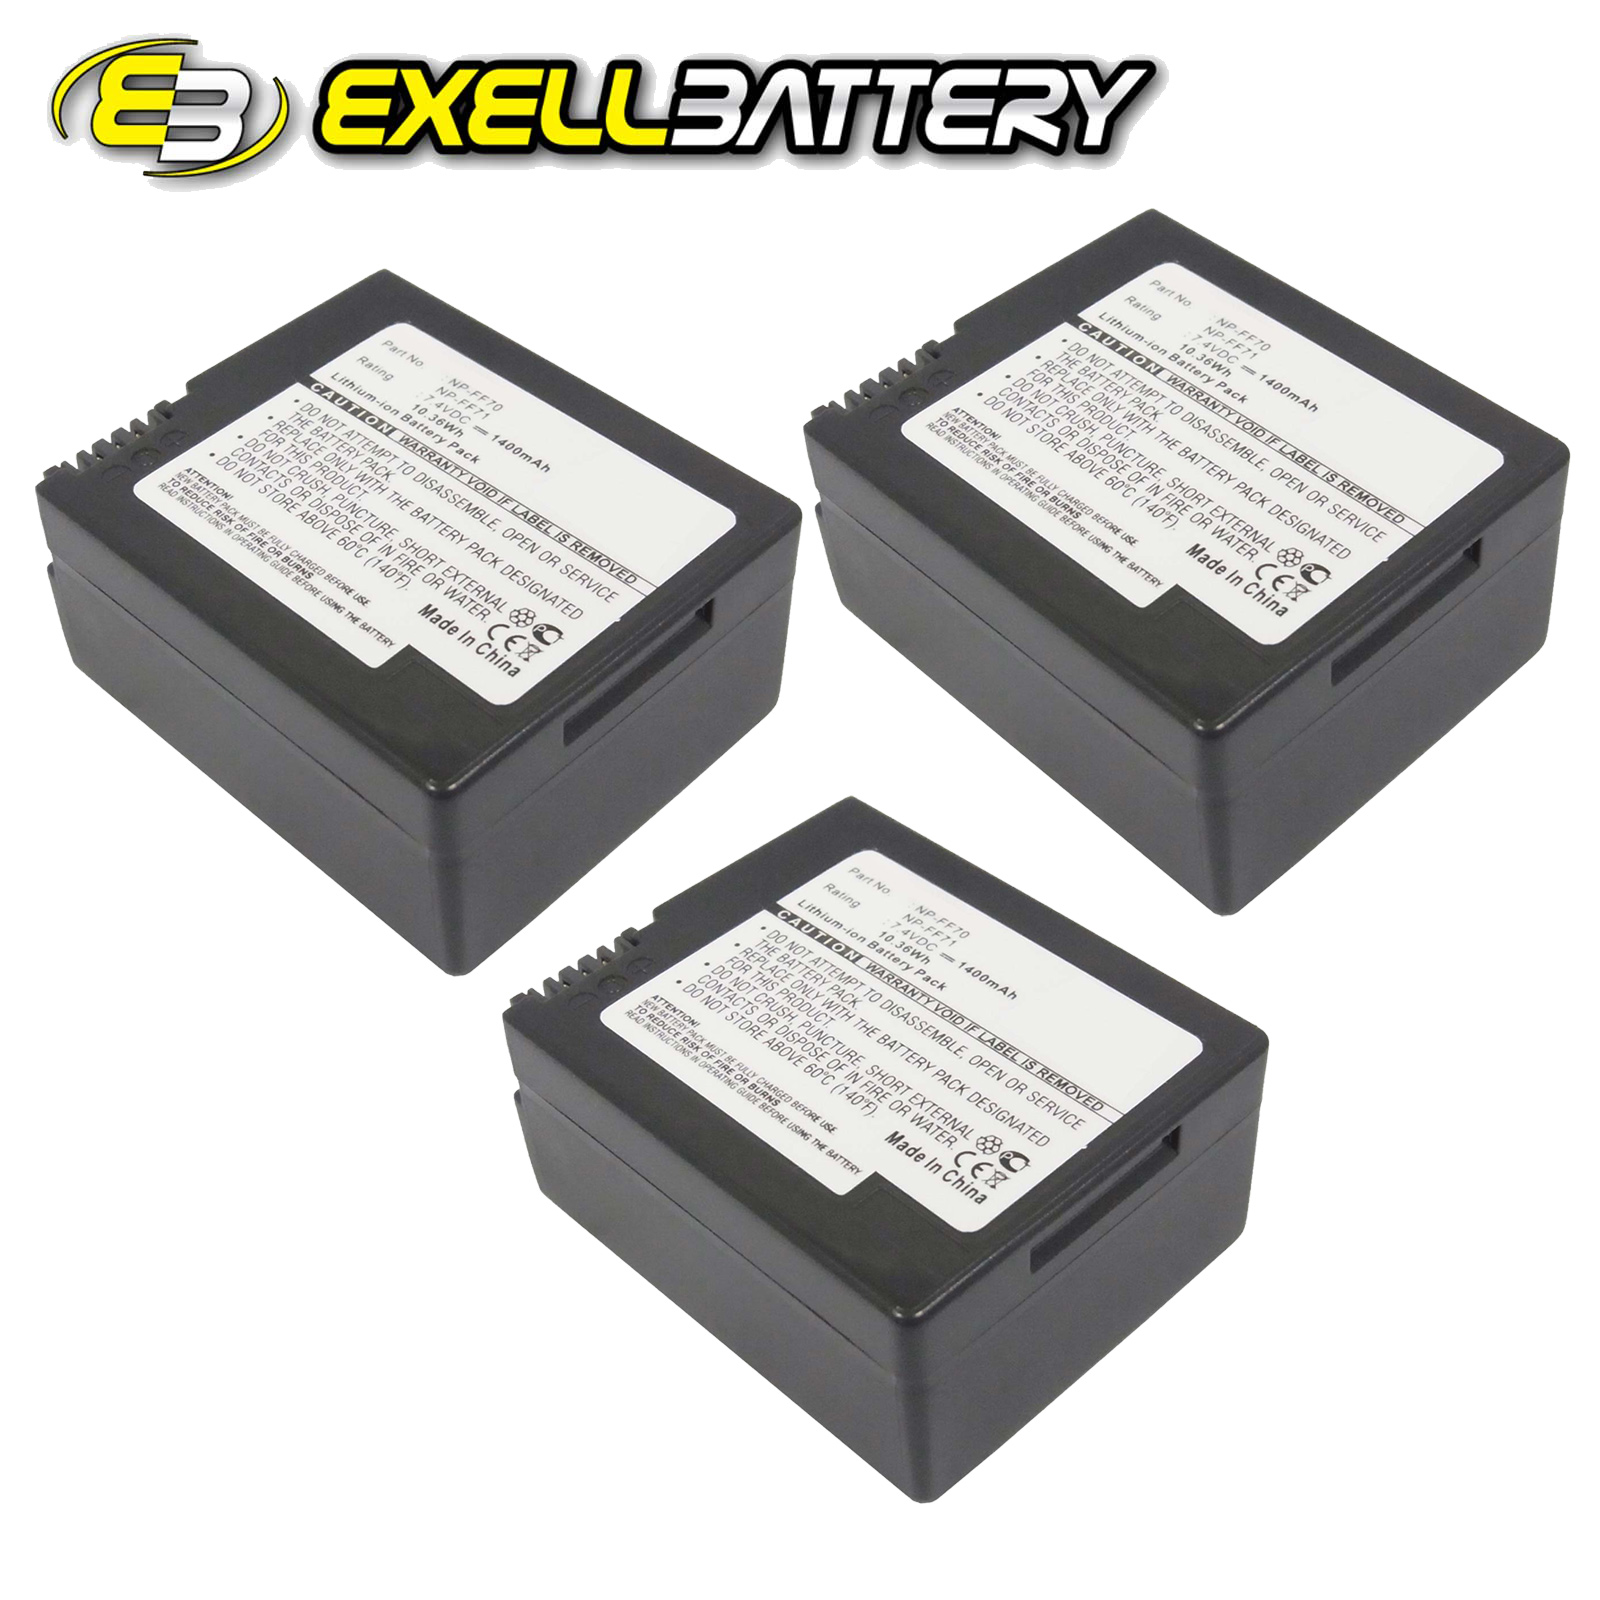 3x 7.4V 1400mAh Digital Camera Battery Fits Sony DCR-PC9,...